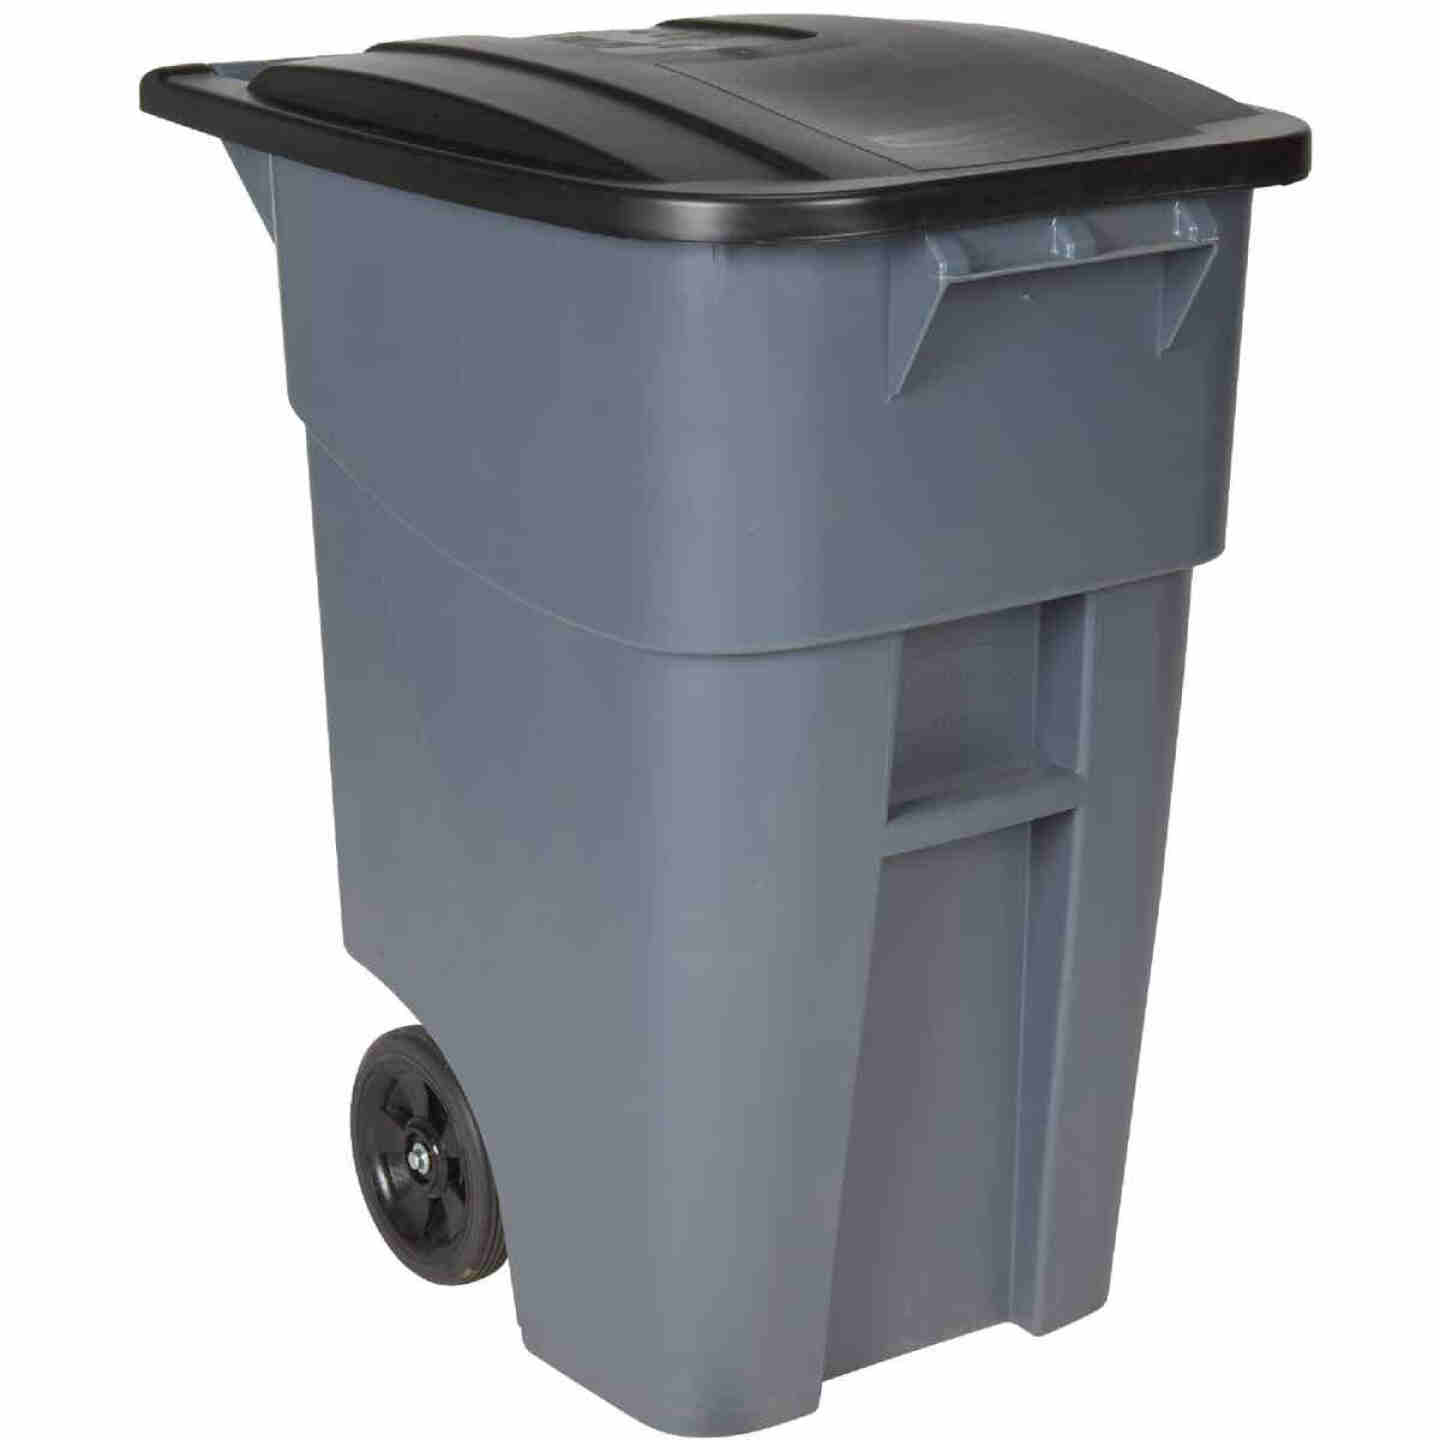 Rubbermaid 50 Gal. Plastic Trash Can With Lid Image 1